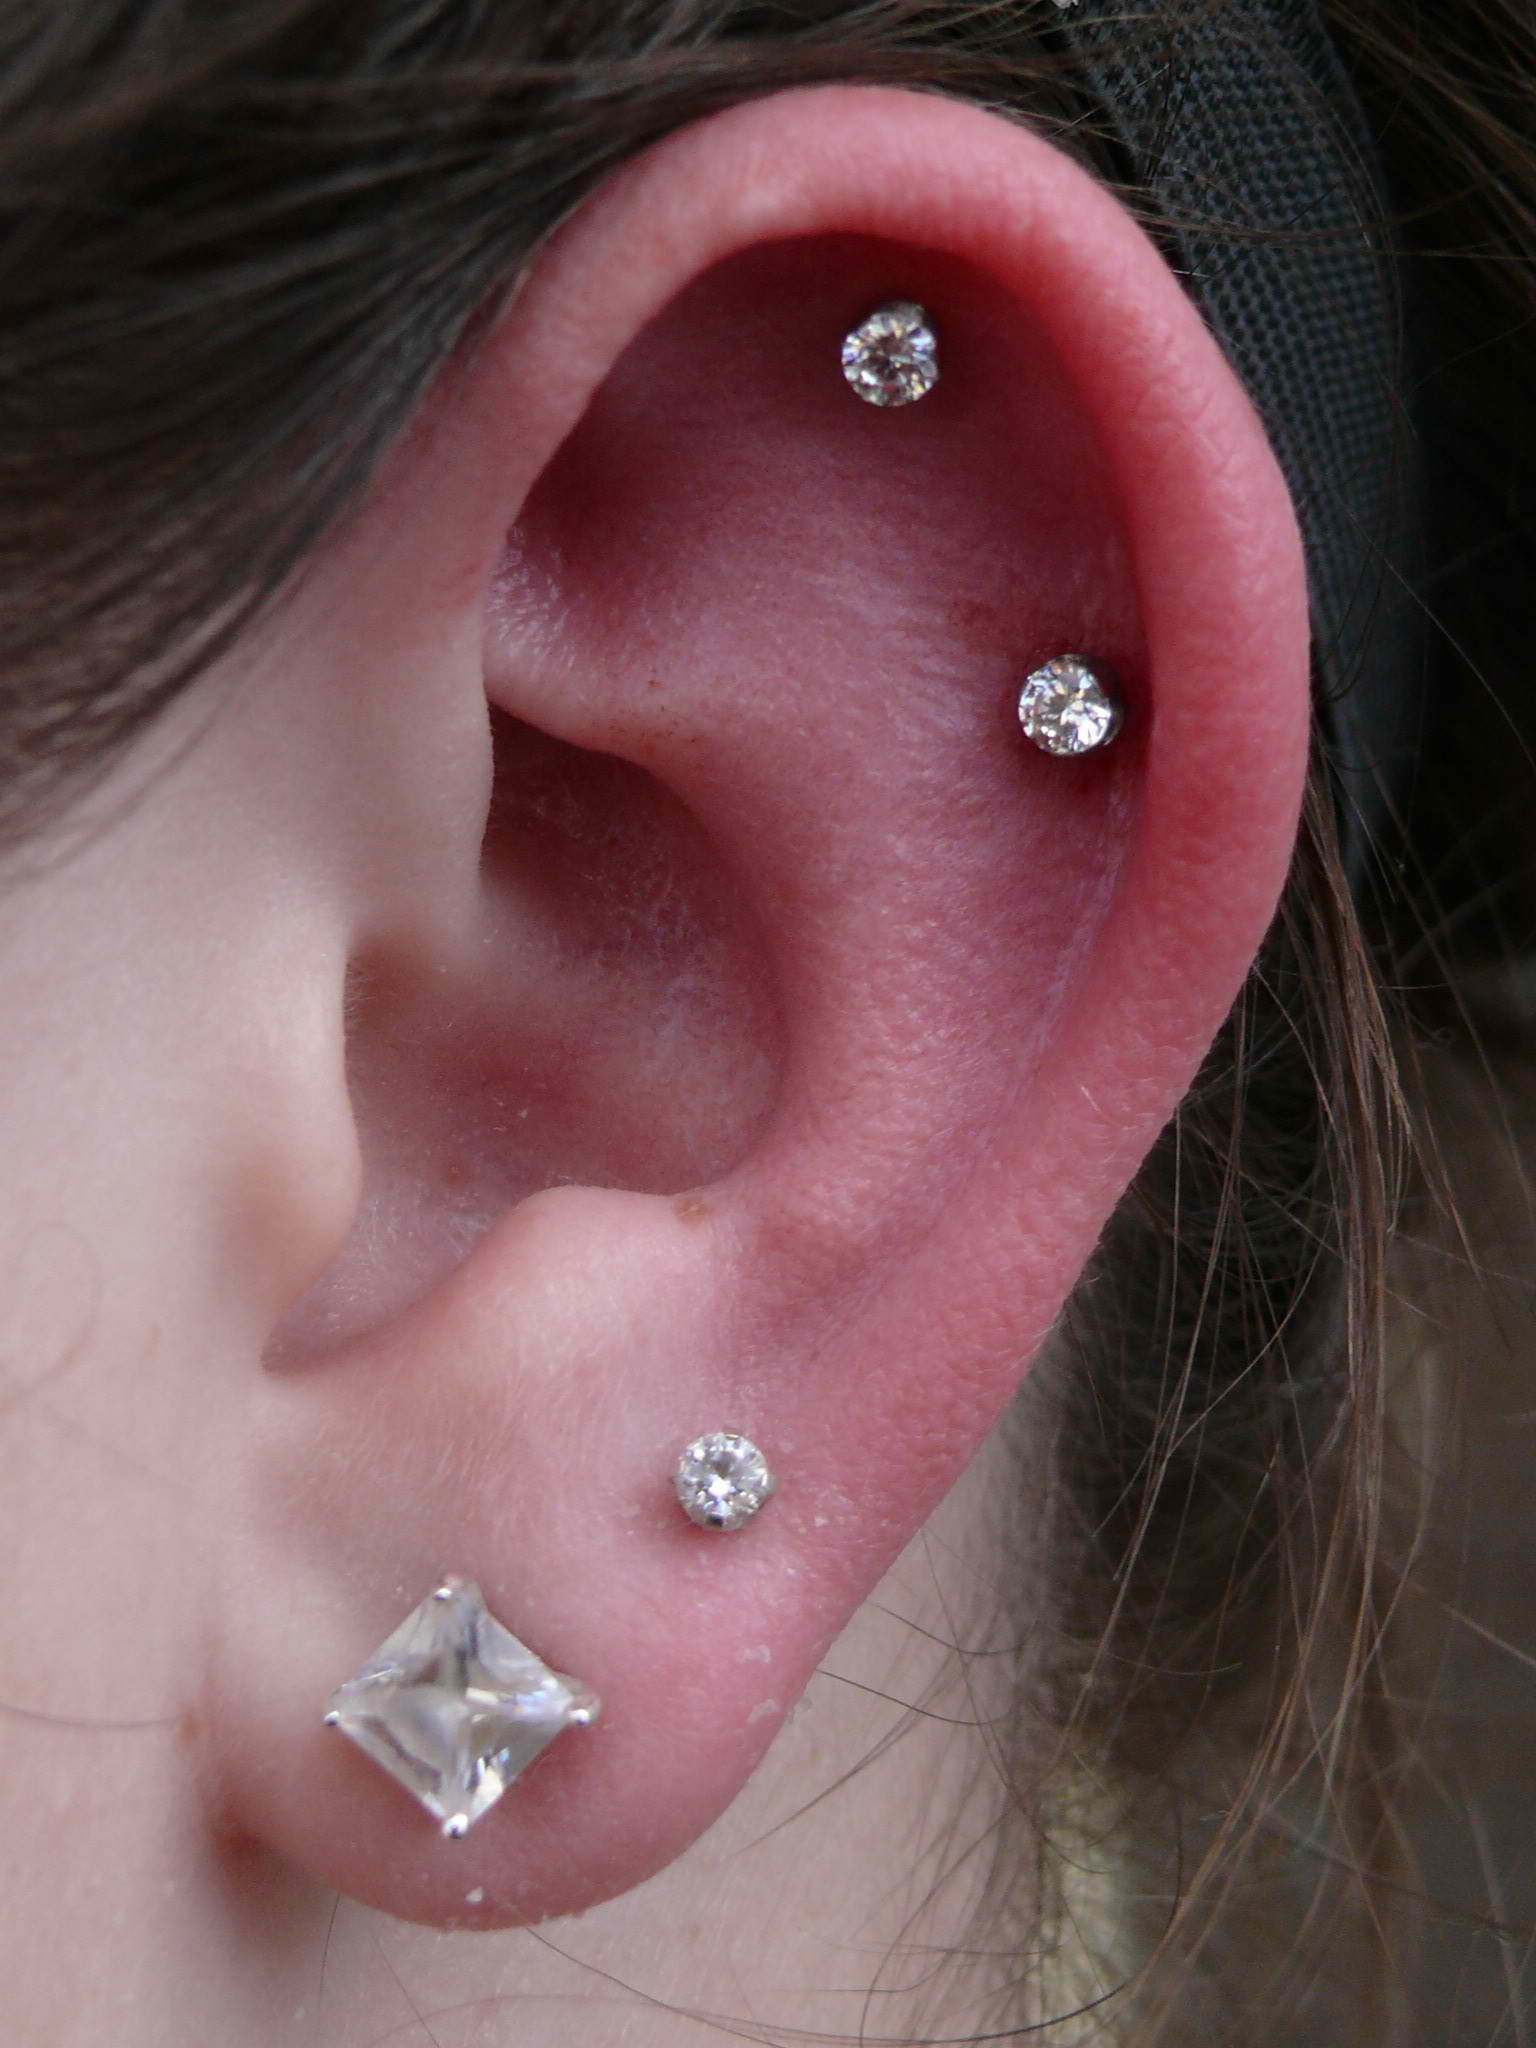 Get My Cartilage Piercedtop On Left Lower On Right Ear